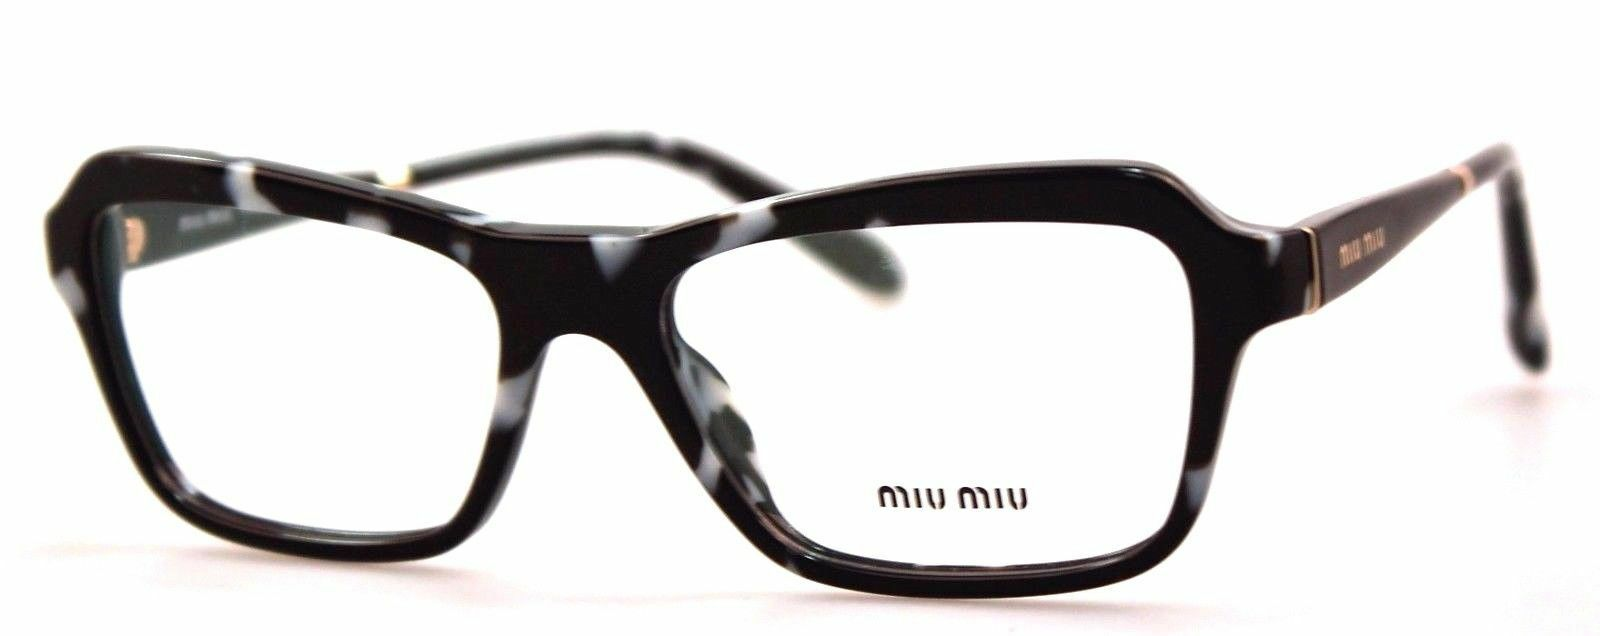 Miu Miu Eyeglasses VMU02N PC7-1O1 RX-Able